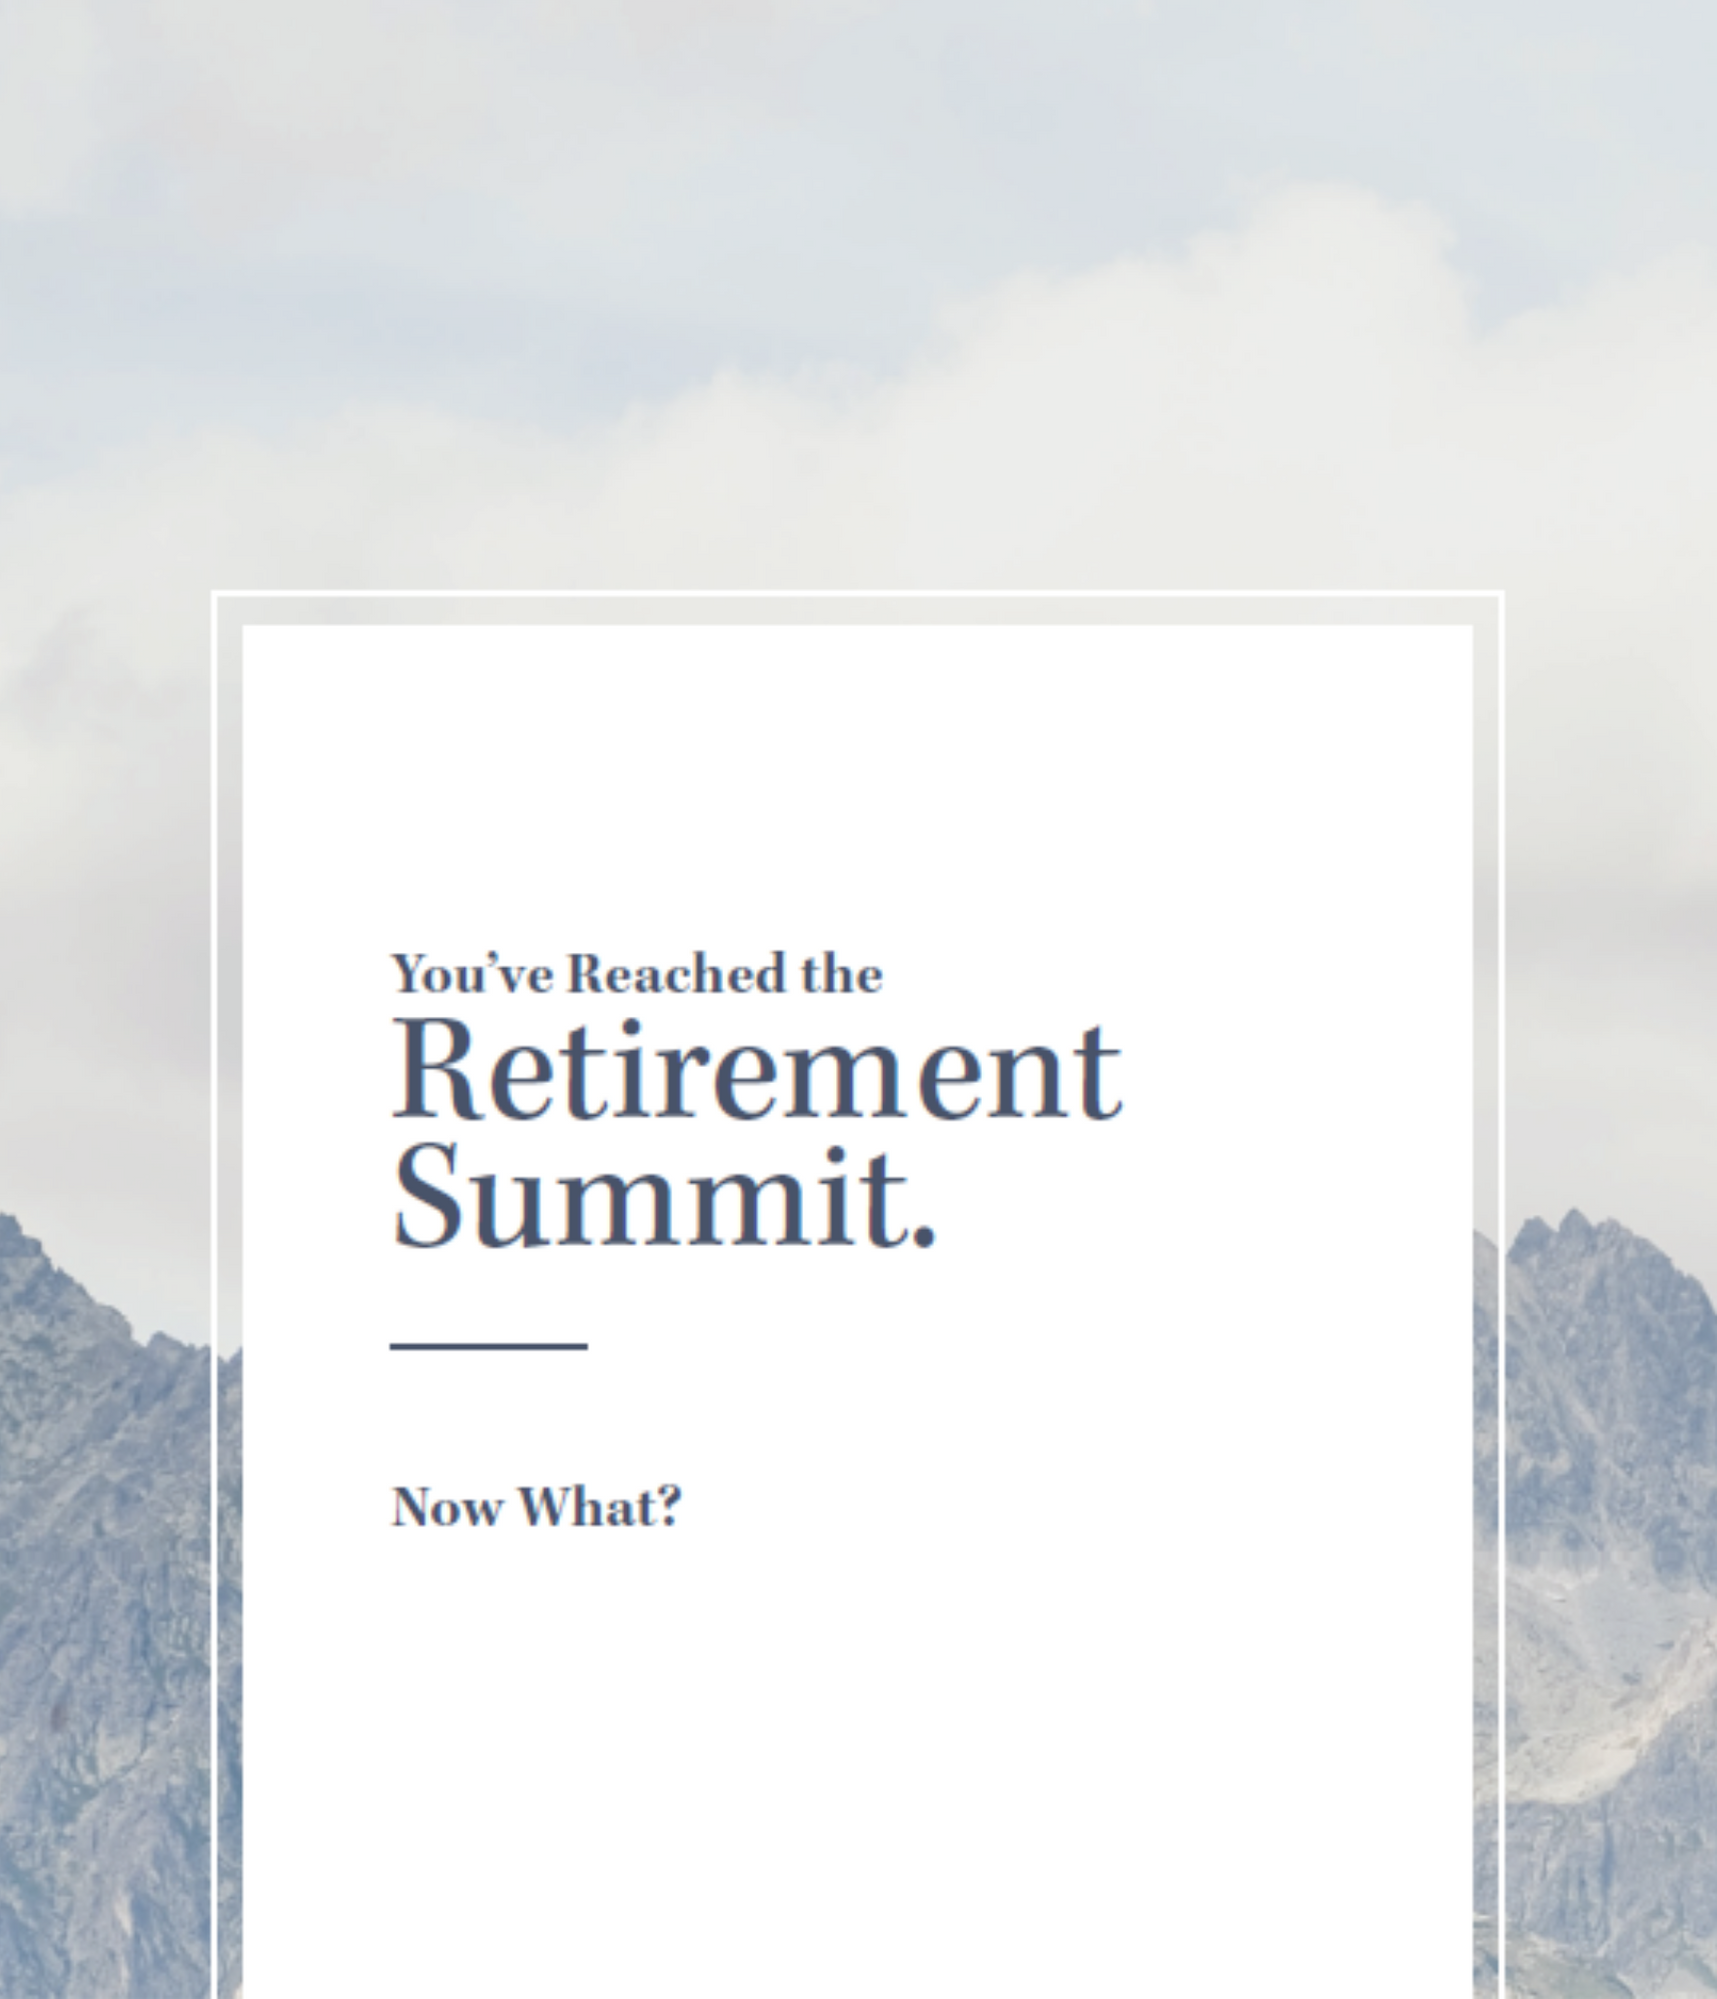 You've Reached the Retirement Summit